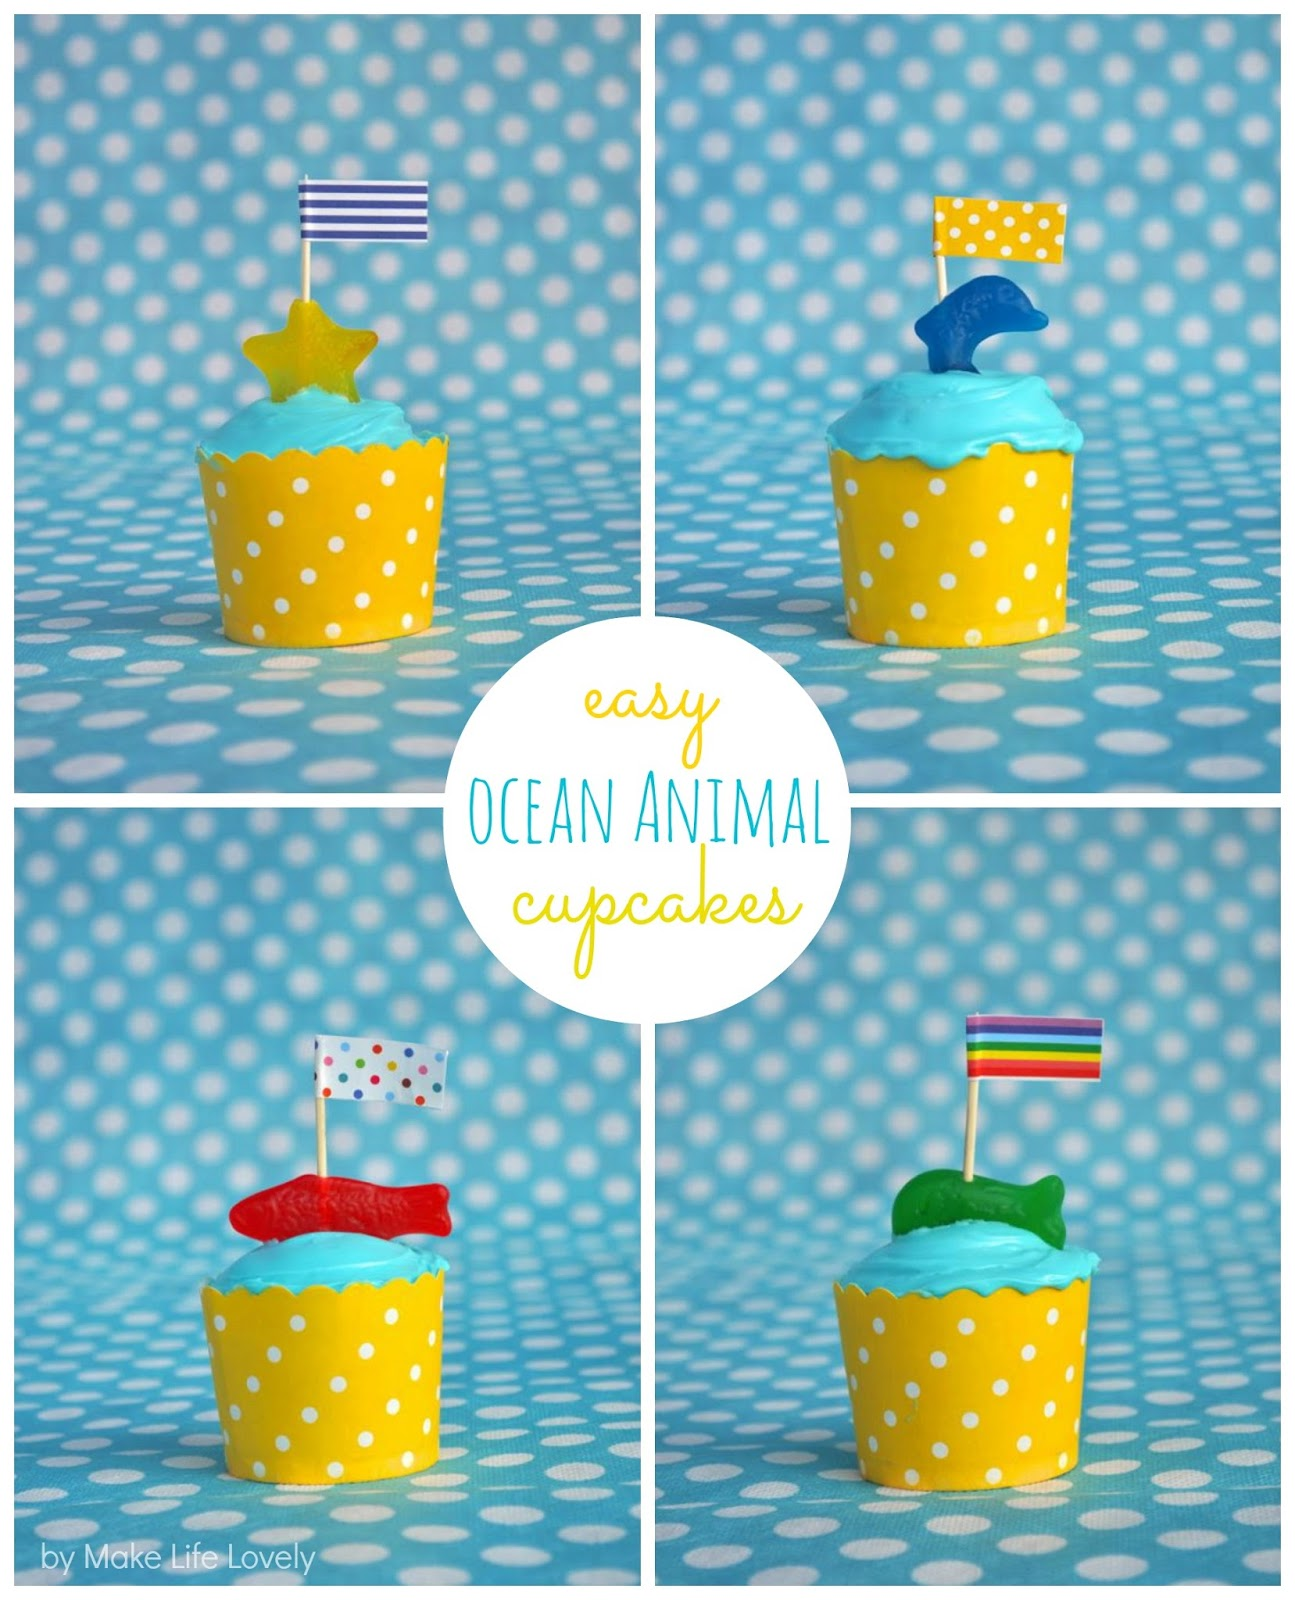 Make Life Lovely: Easy Ocean Animal Cupcakes + My Birthday Giveaway!